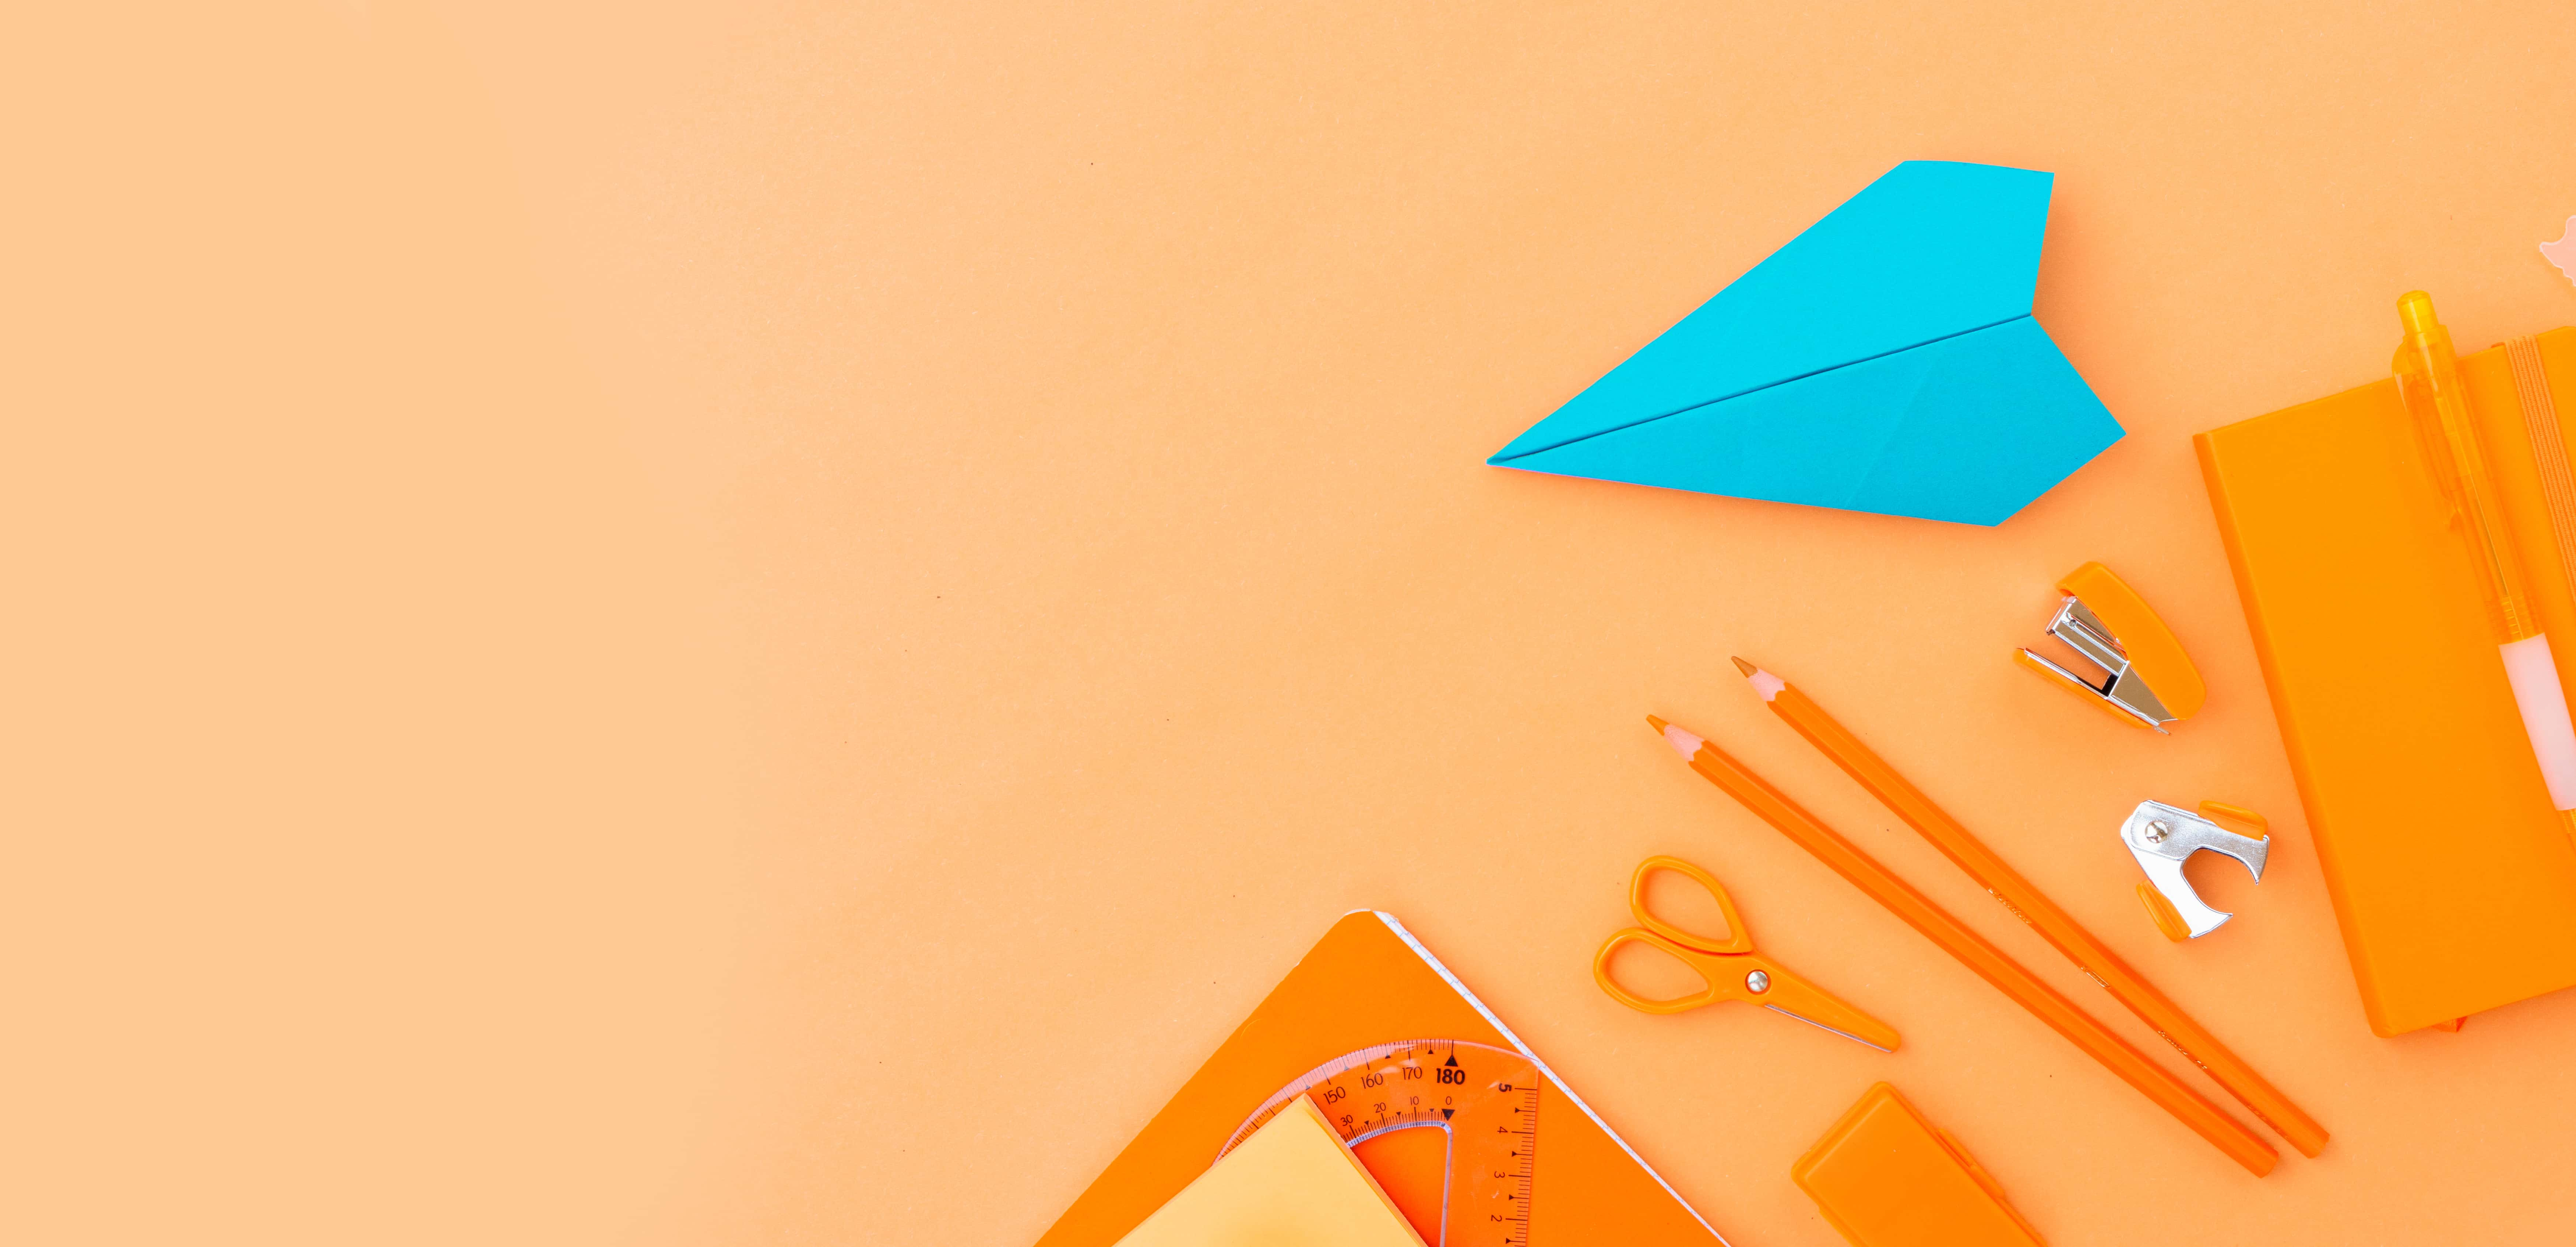 orange background with orange office supplies and turquoise paper airplane